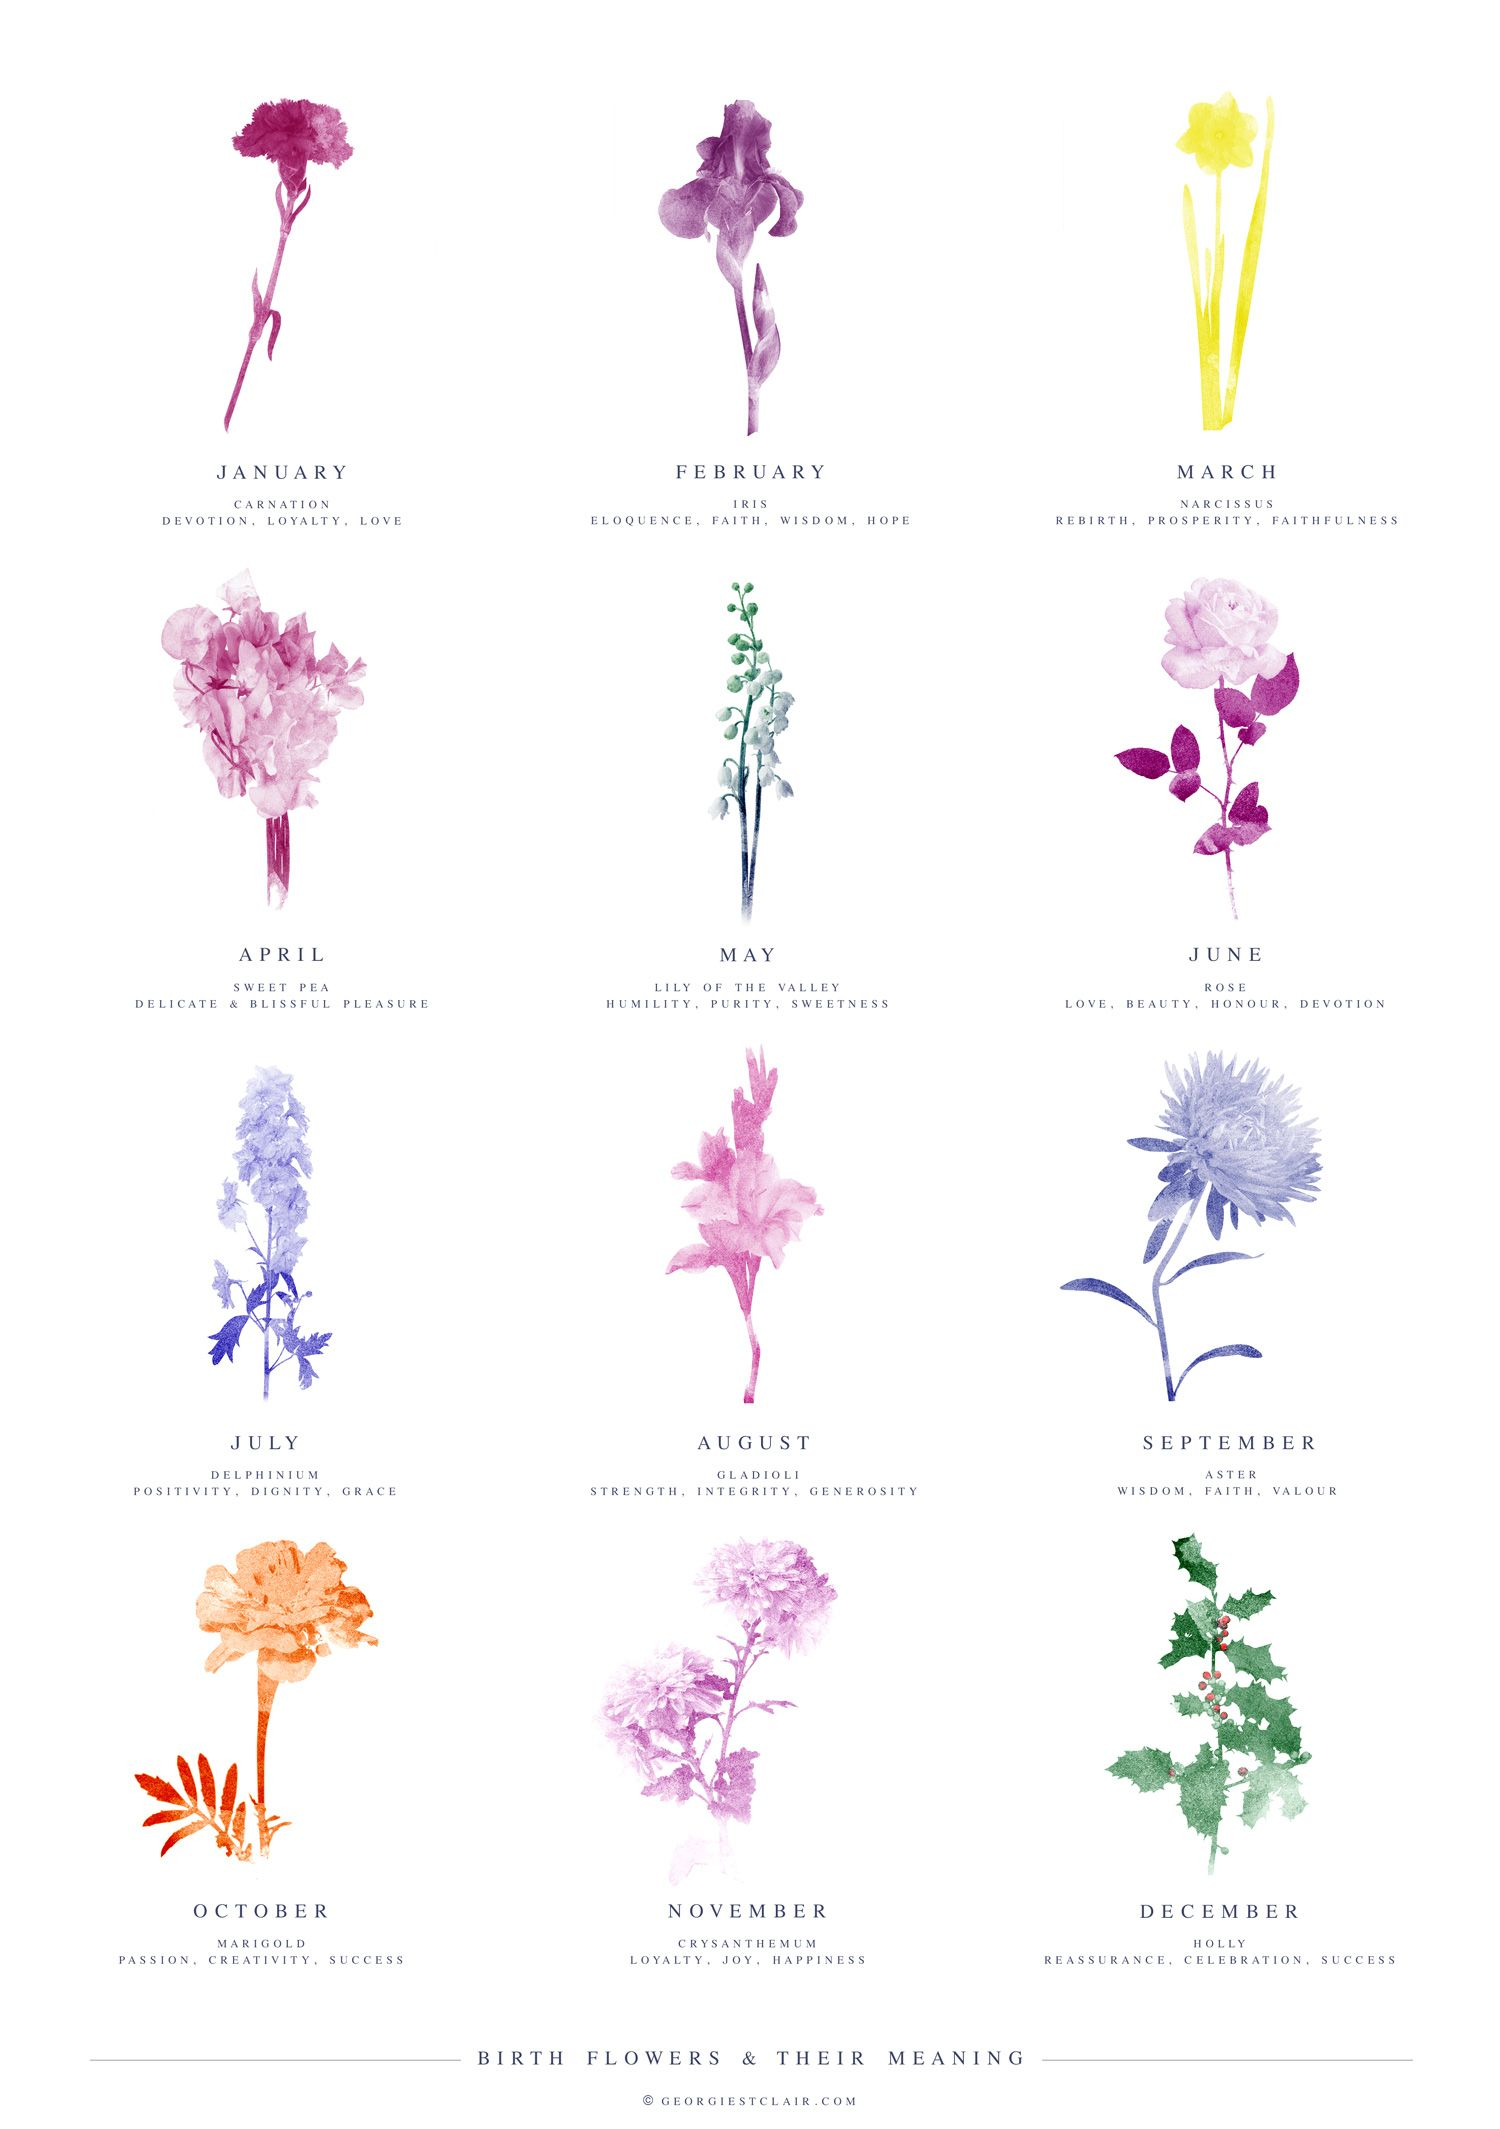 Monthly Birth Flowers and their meanings Birth flower